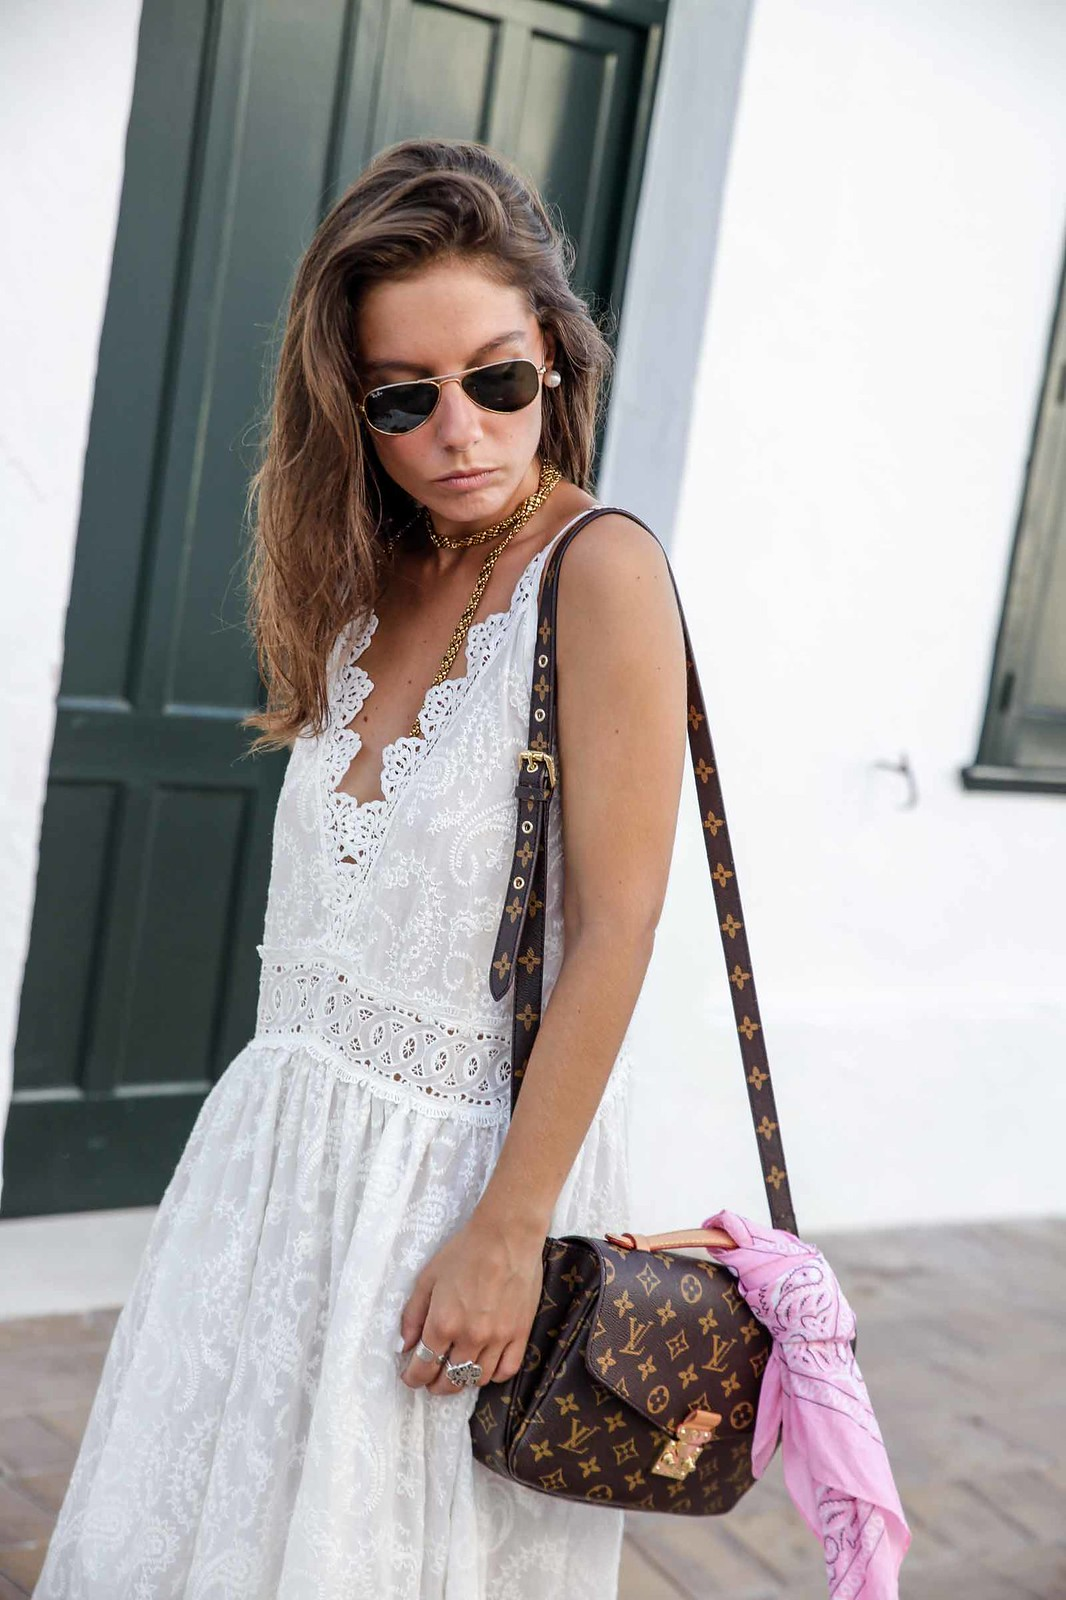 06_vestido_blanco_ibizenco_miss_june_long_dress_outfit_rayban_louis_vuitton_bag_outfit_streetstyle_influencer_barcelona_theguestgirl_the_guest_girl_barcelona_influencer